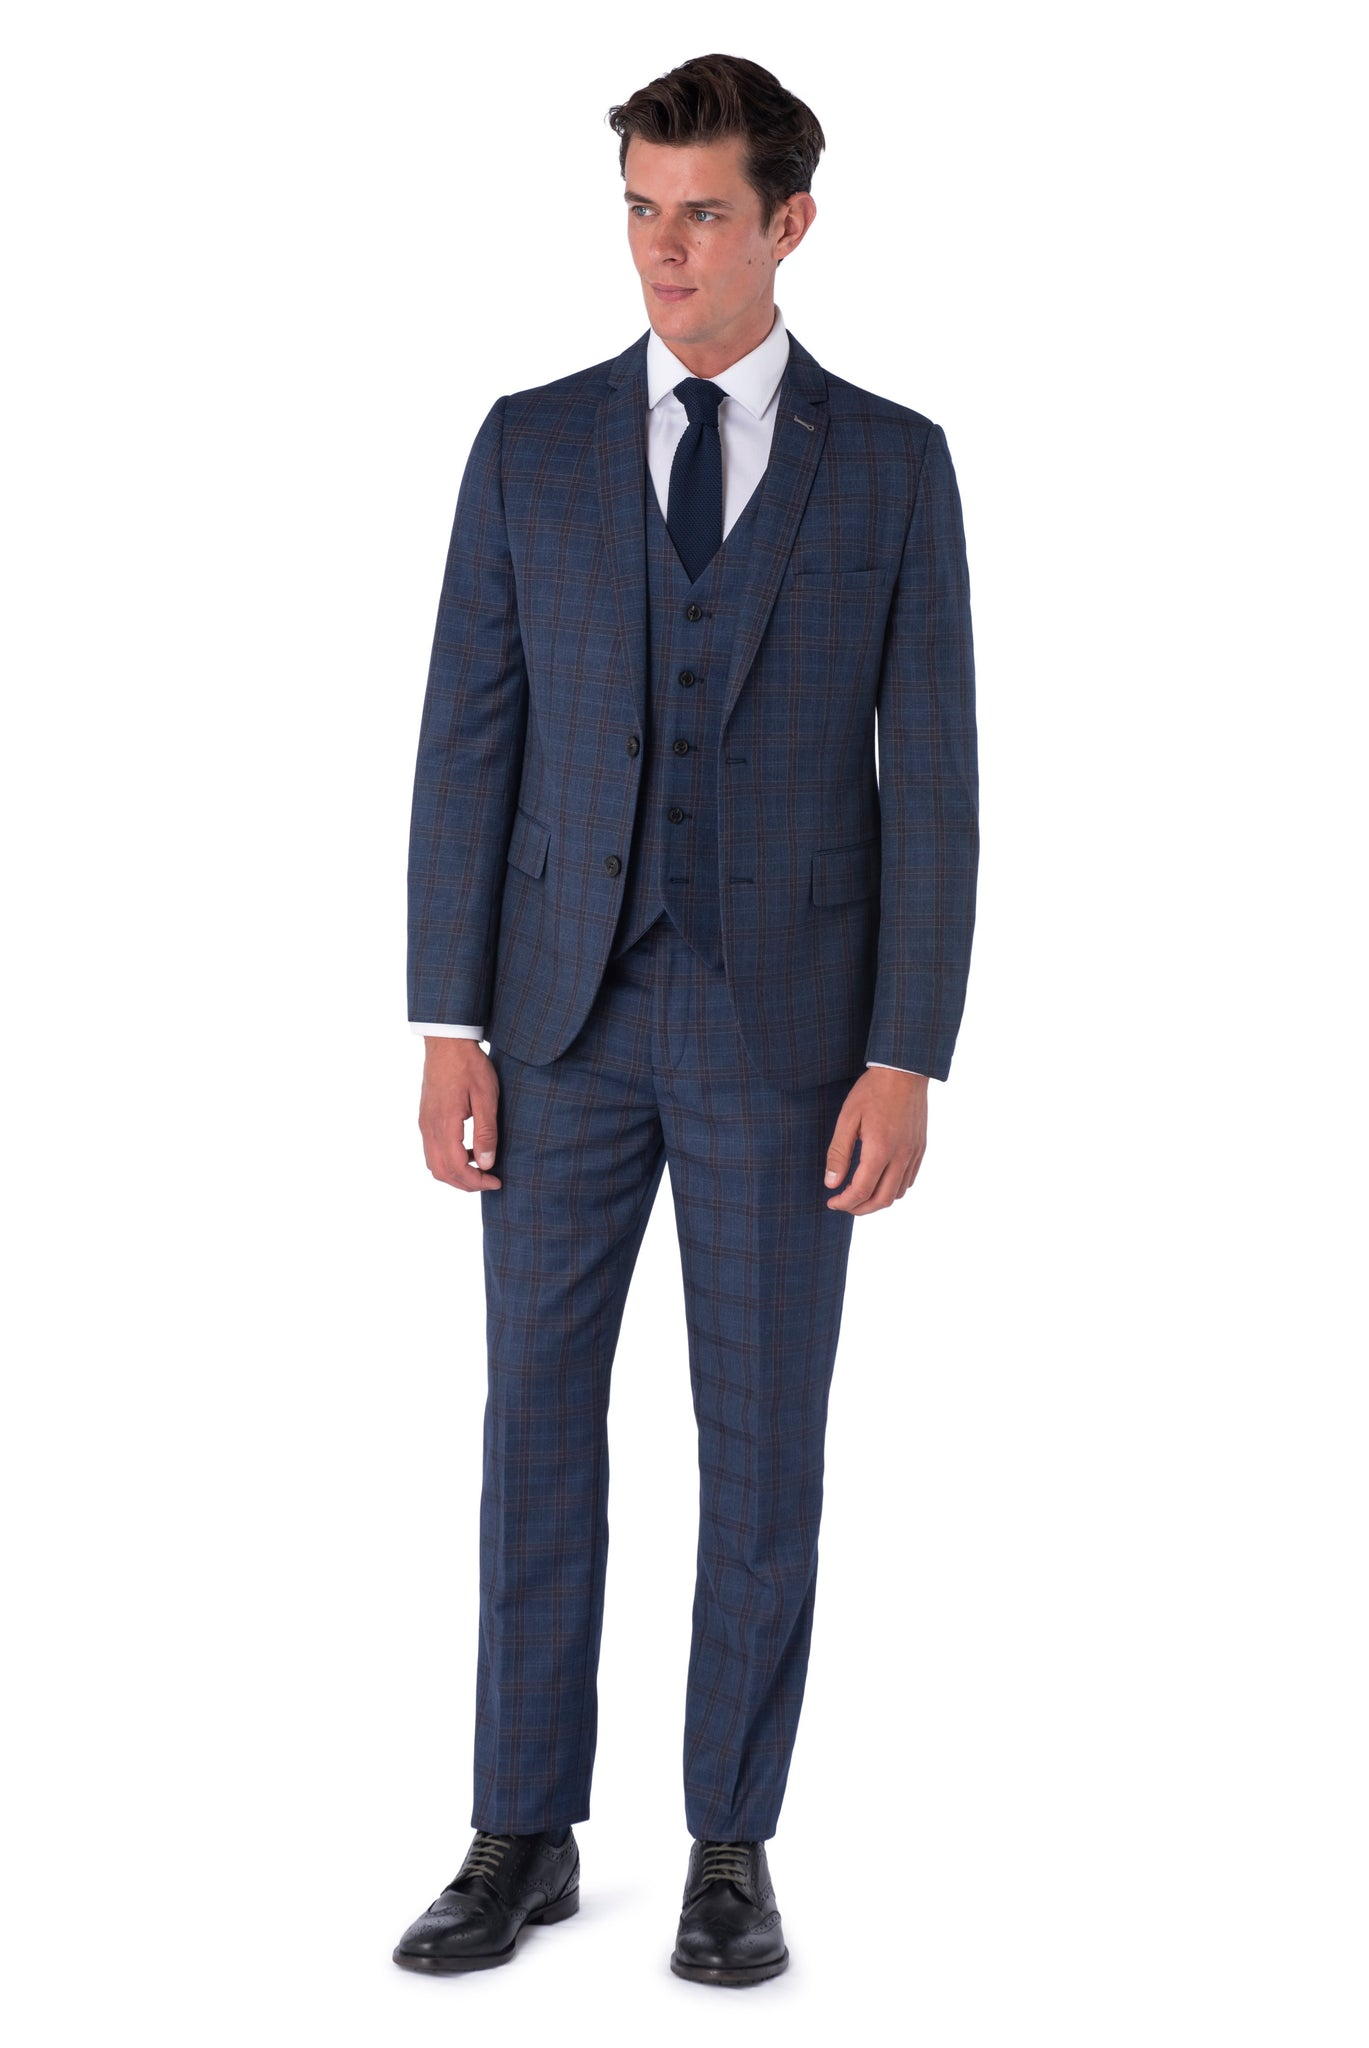 AIDEN Navy & Burgundy Slim Fit Suit - Front